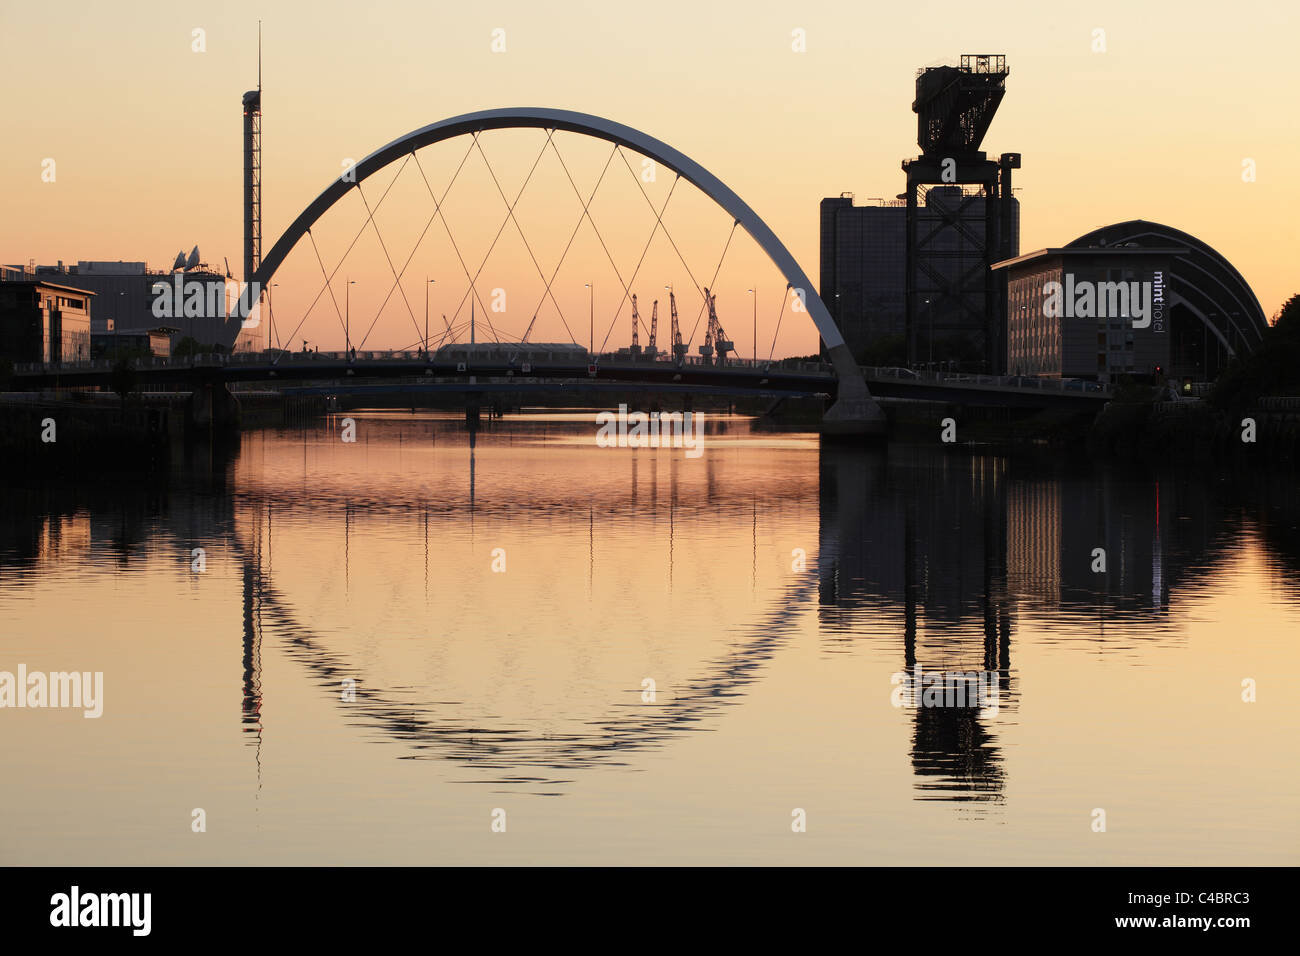 Looking West along the River Clyde towards the Clyde Arc Bridge at sunset, Glasgow, Scotland, UK - Stock Image